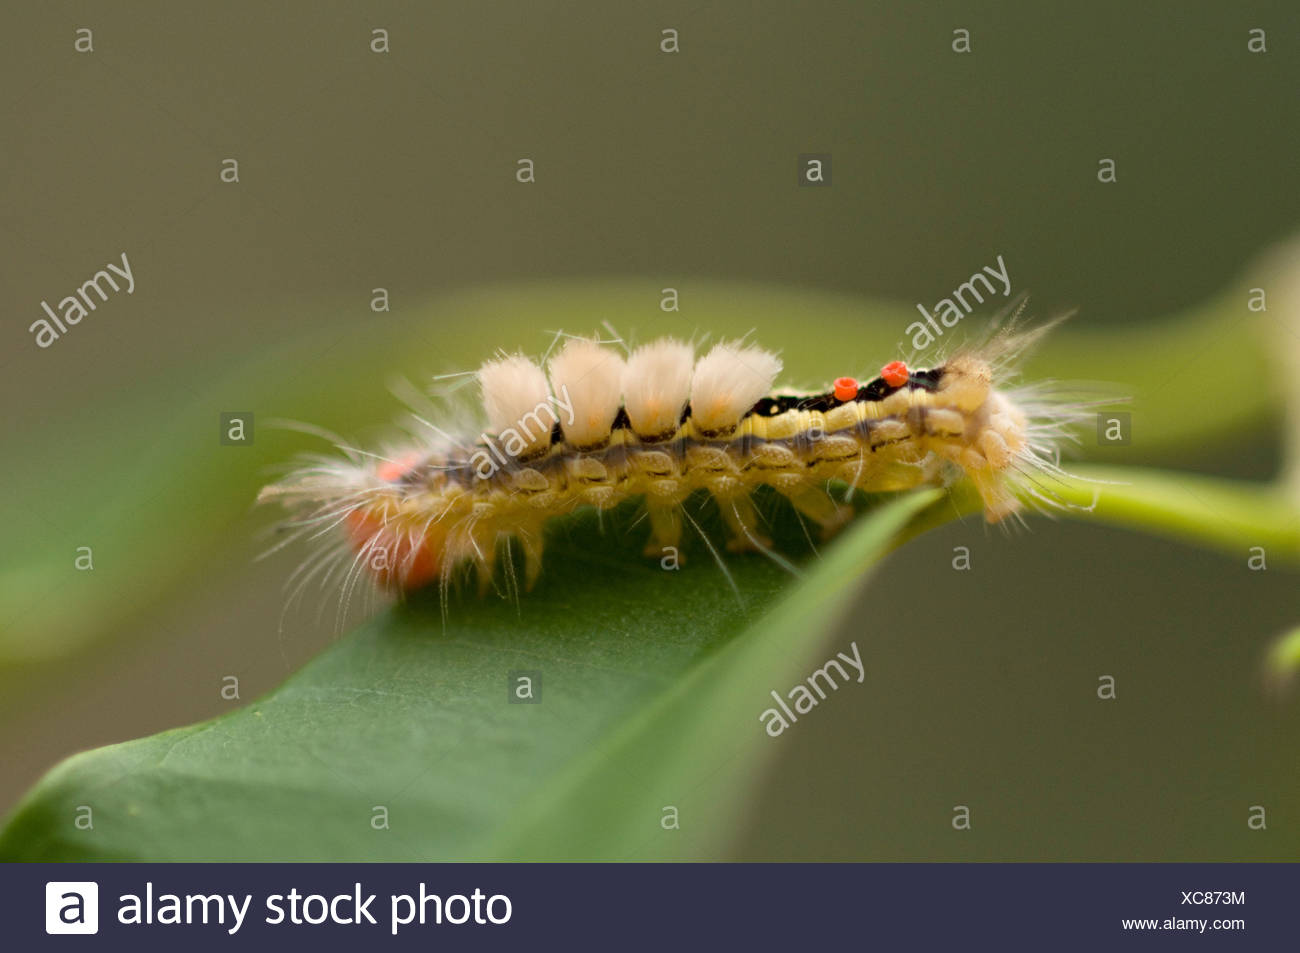 A White Marked Tussock Moth climbs on a tree branch in Nebraska. - Stock Image